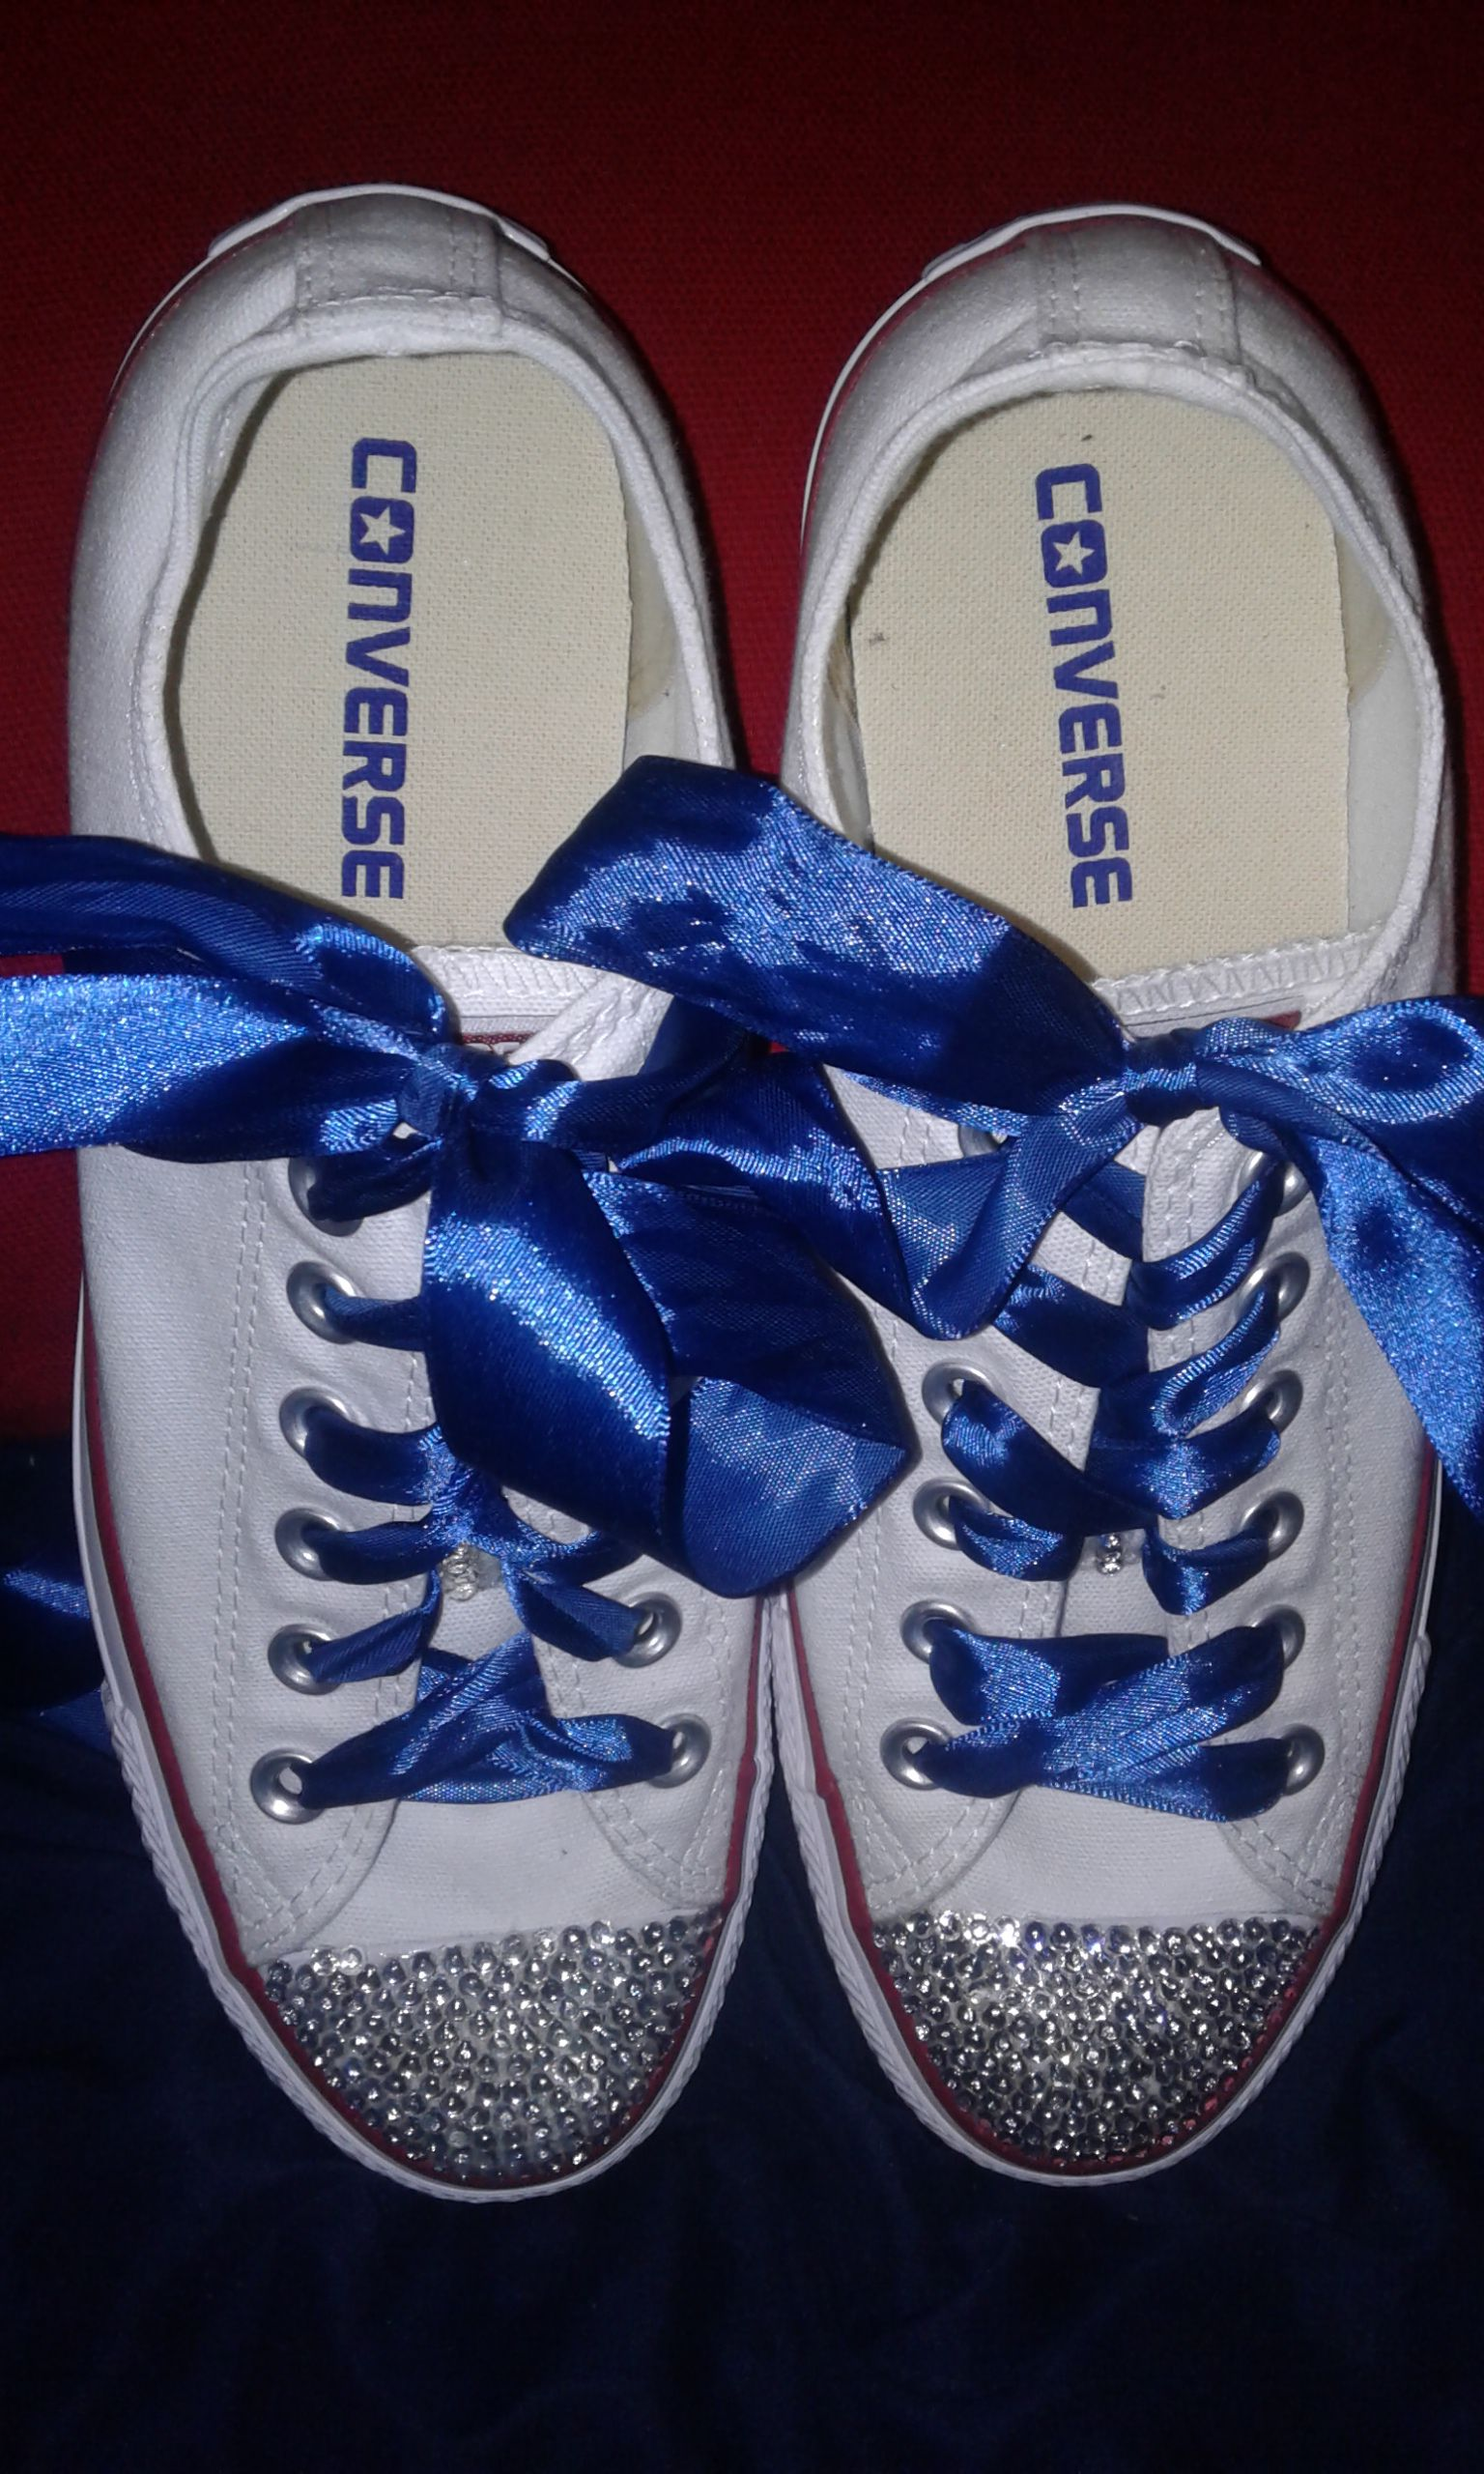 blinged bling out shoes sneakers converse tennis wedding taylors chuck party